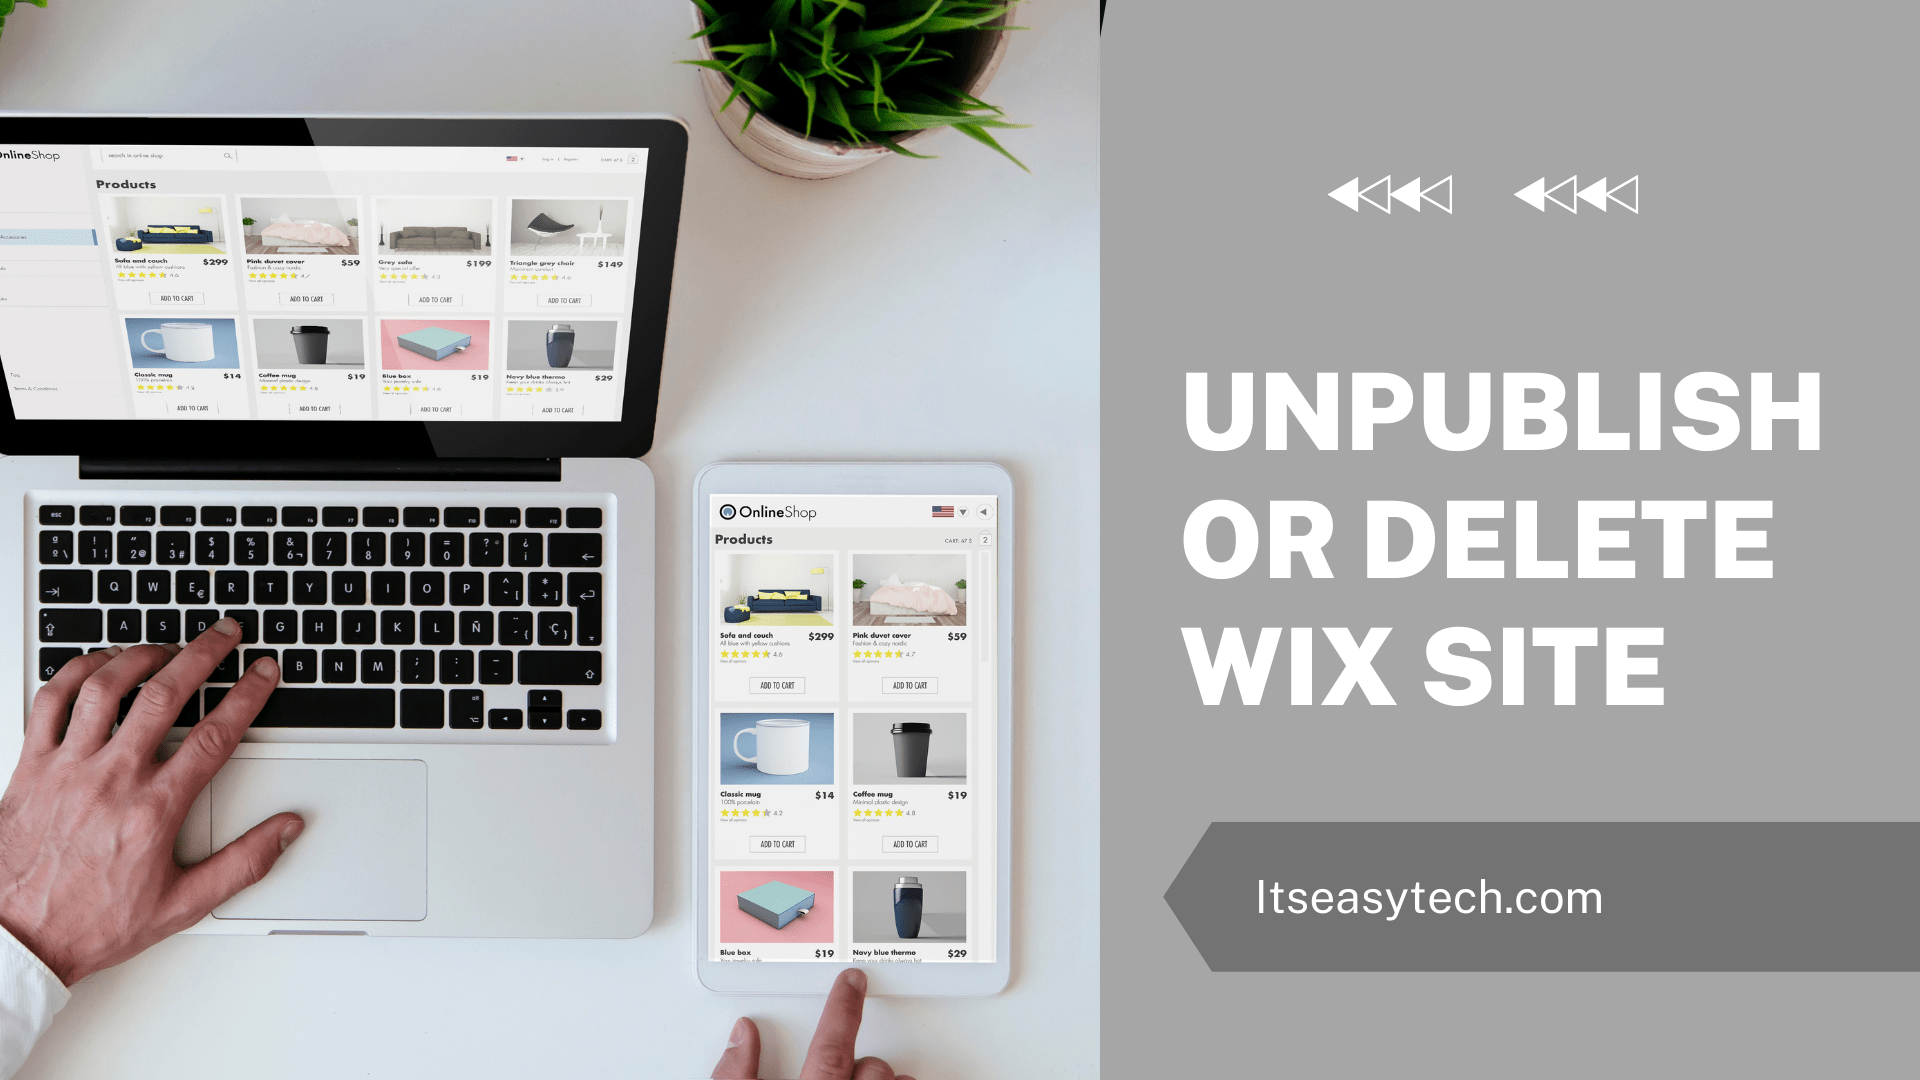 How To Unpublish a WIx Site